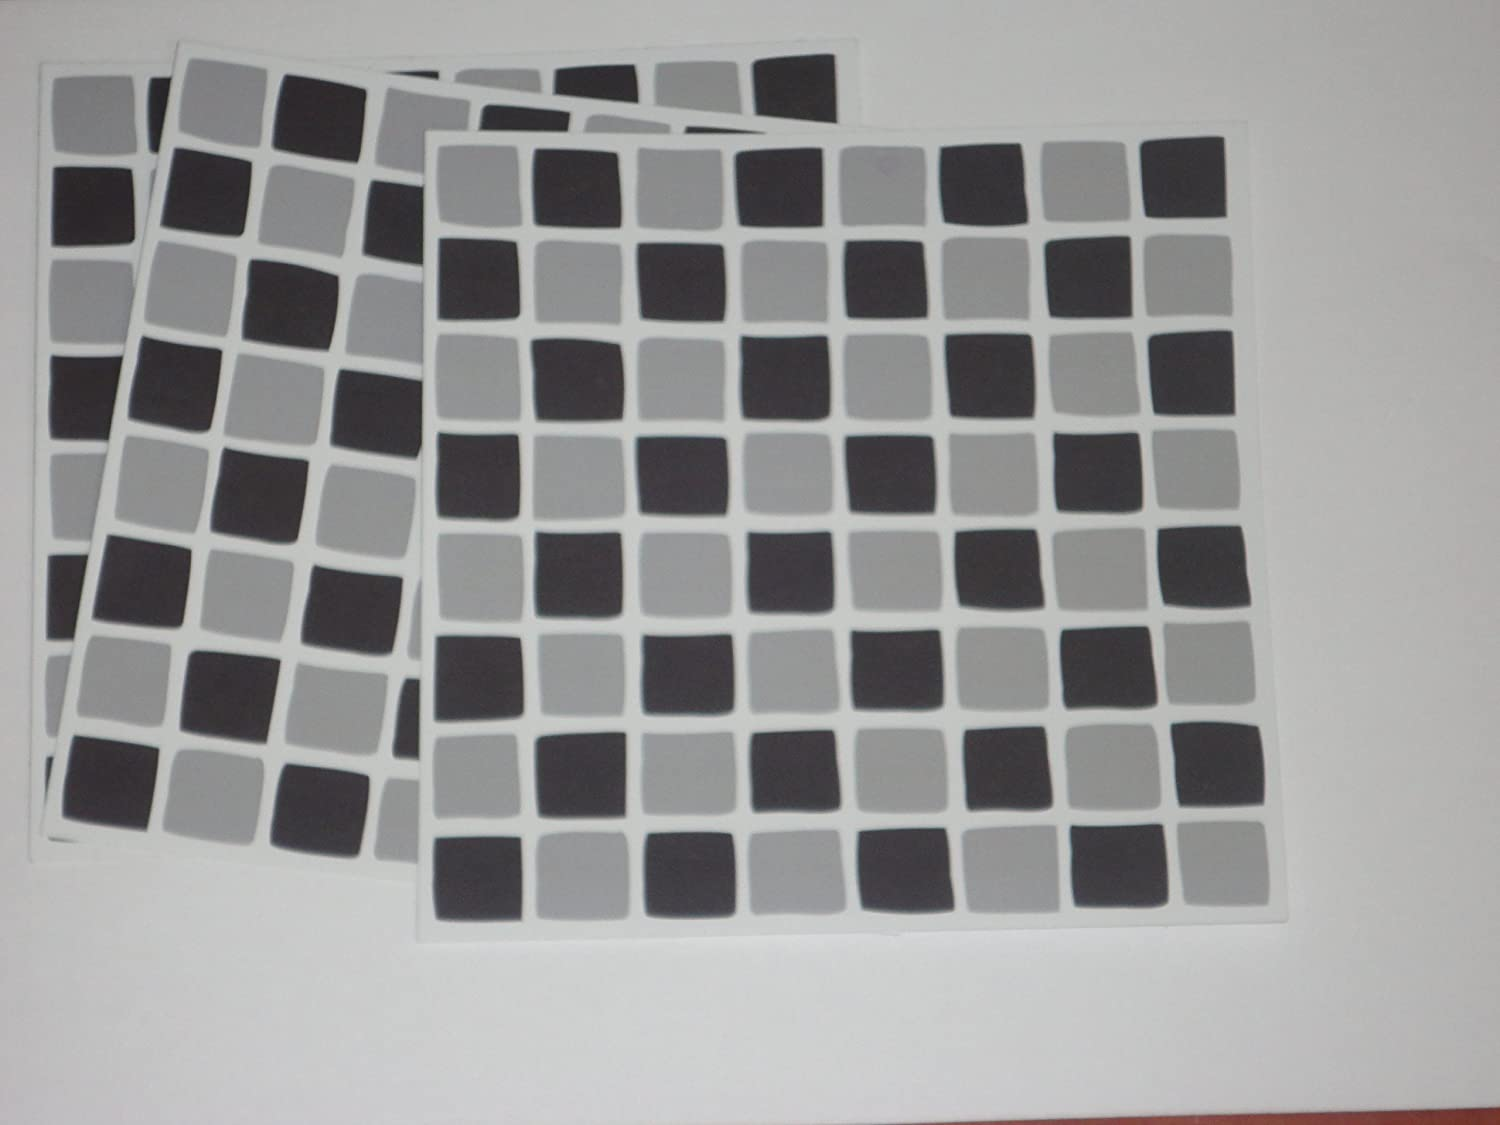 PACK OF 10 Black And Grey Mosaic Tile Transfers Stickers . Quickly  Transform Your Bathroom Or Kitchen Wall Tiles, Self Adhesive, Quick And  Mess Free: ...